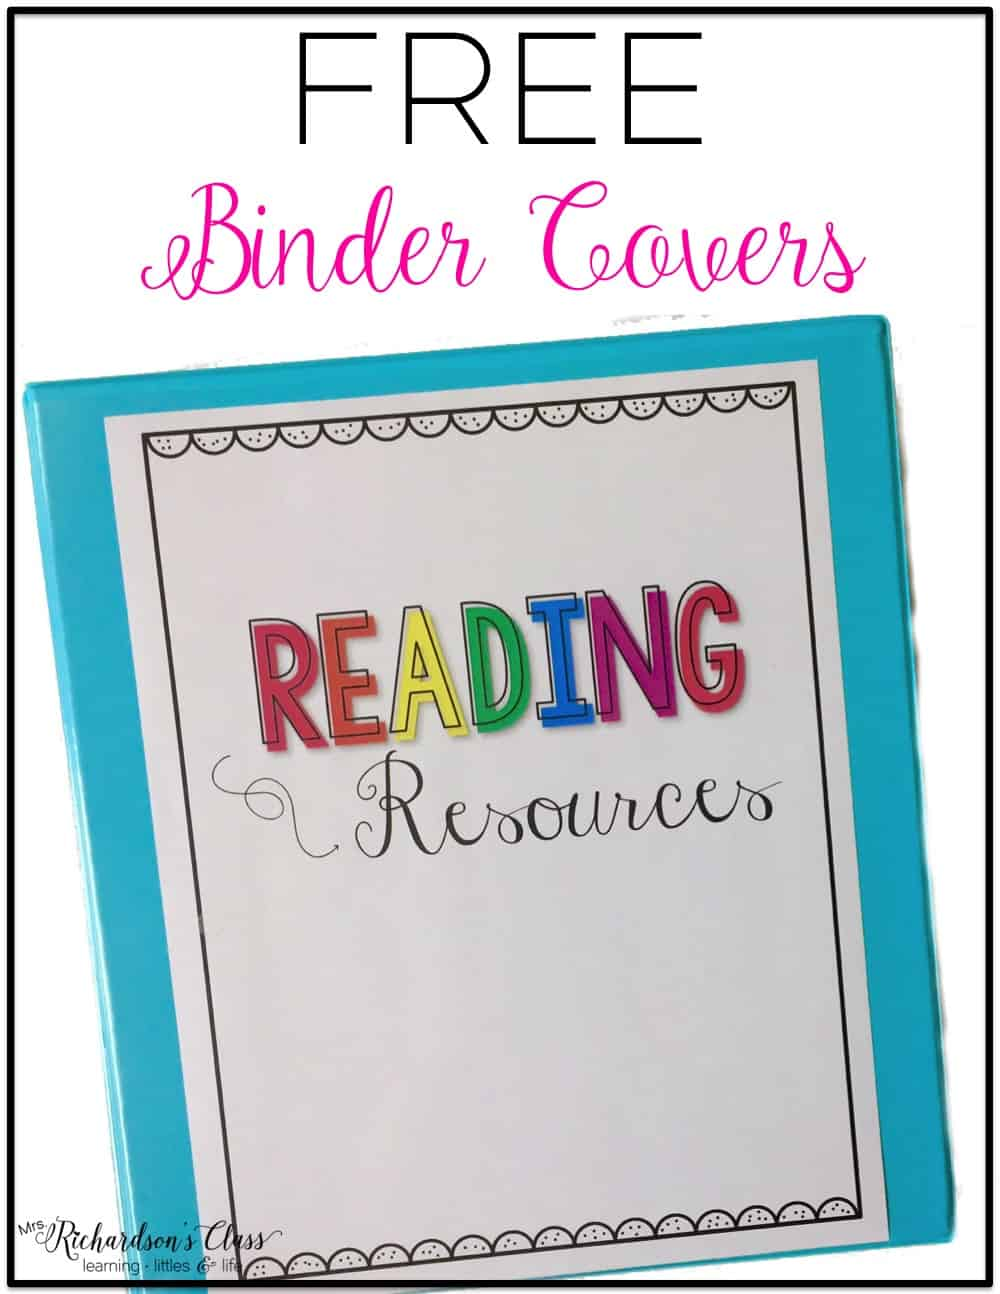 click the image above to subscribe to my email list and grab these binder covers and get organized